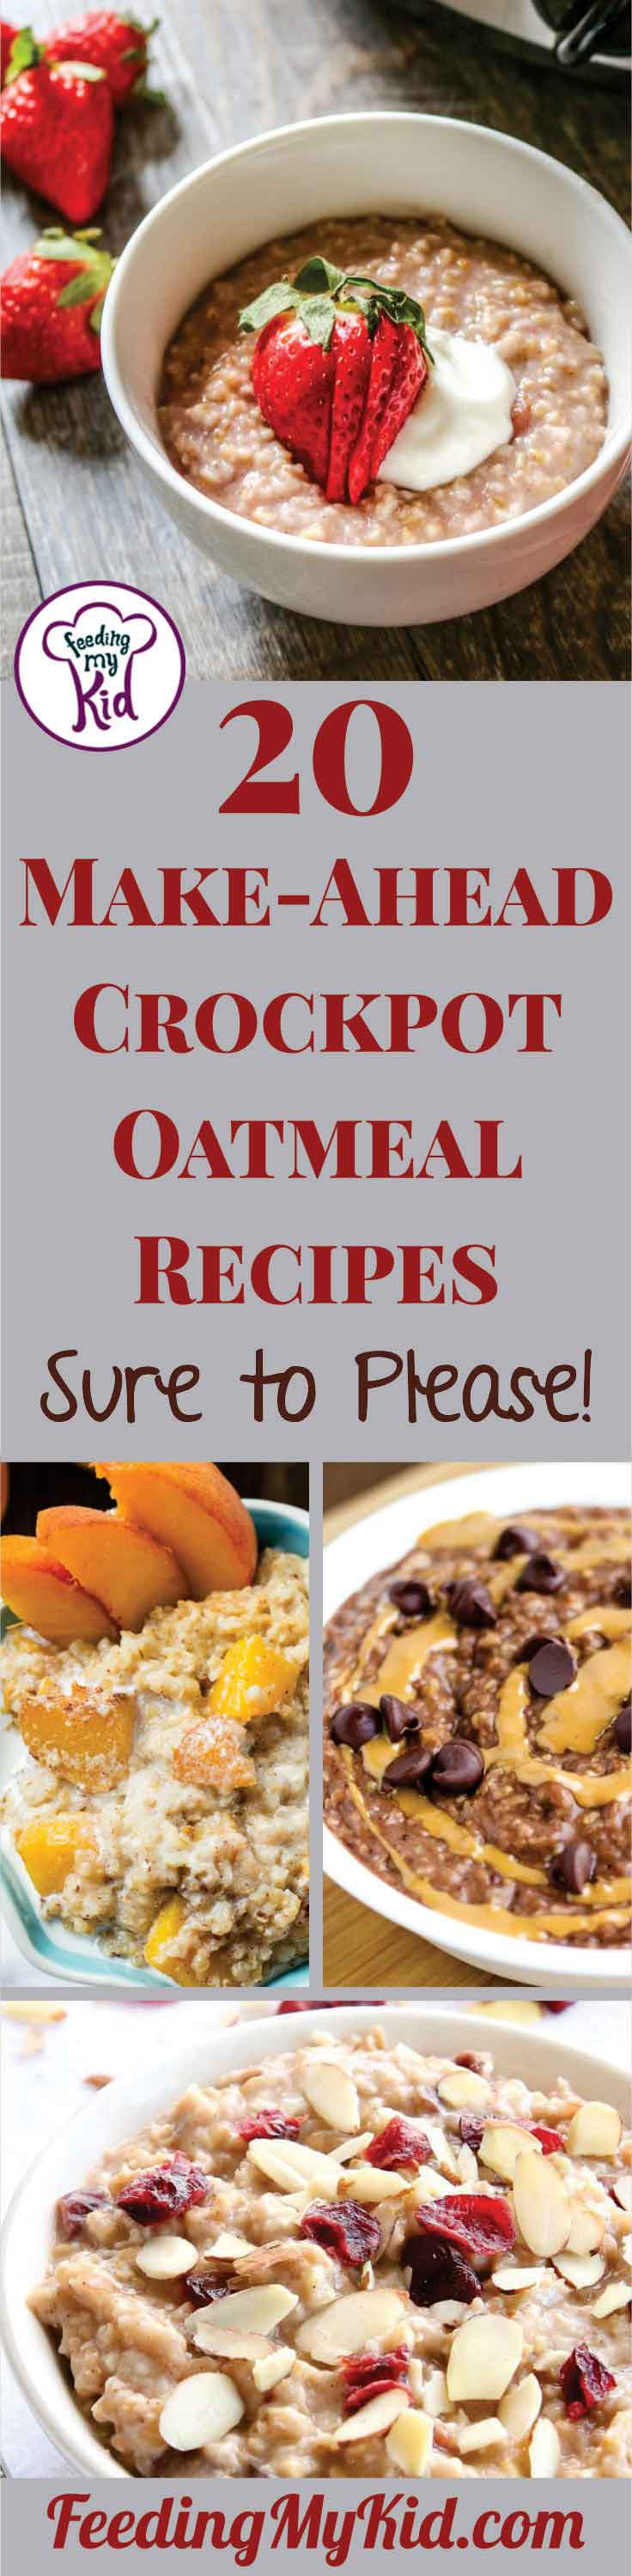 Feeding a crowd? These crockpot oatmeal recipes are sure to please! Perfect for make ahead and weekly meal prep. Super simple and healthy.